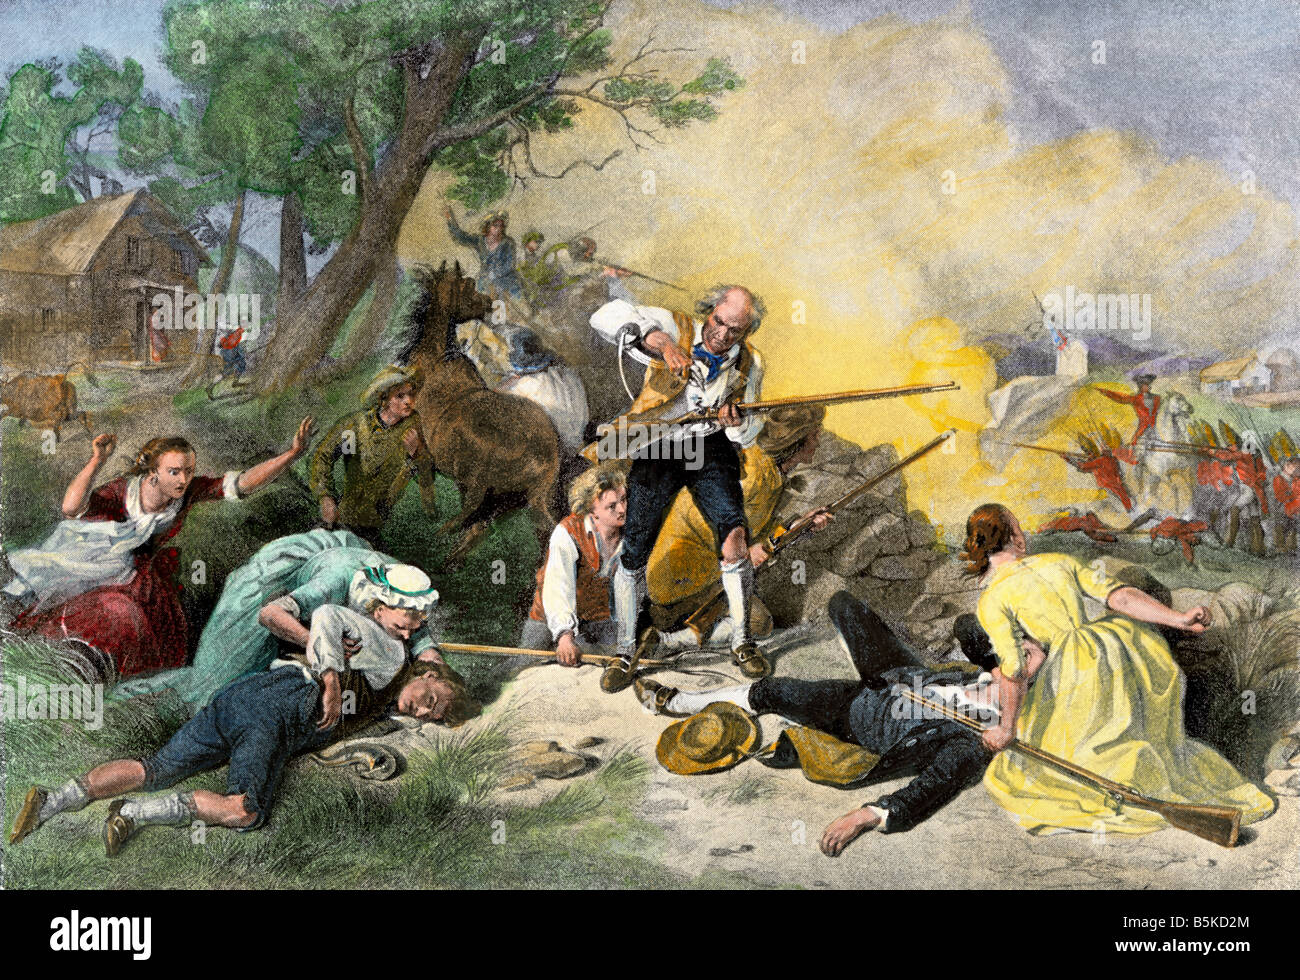 First blow for liberty: colonials harrassing British soldiers on the road from Concord 1775. Hand-colored halftone - Stock Image